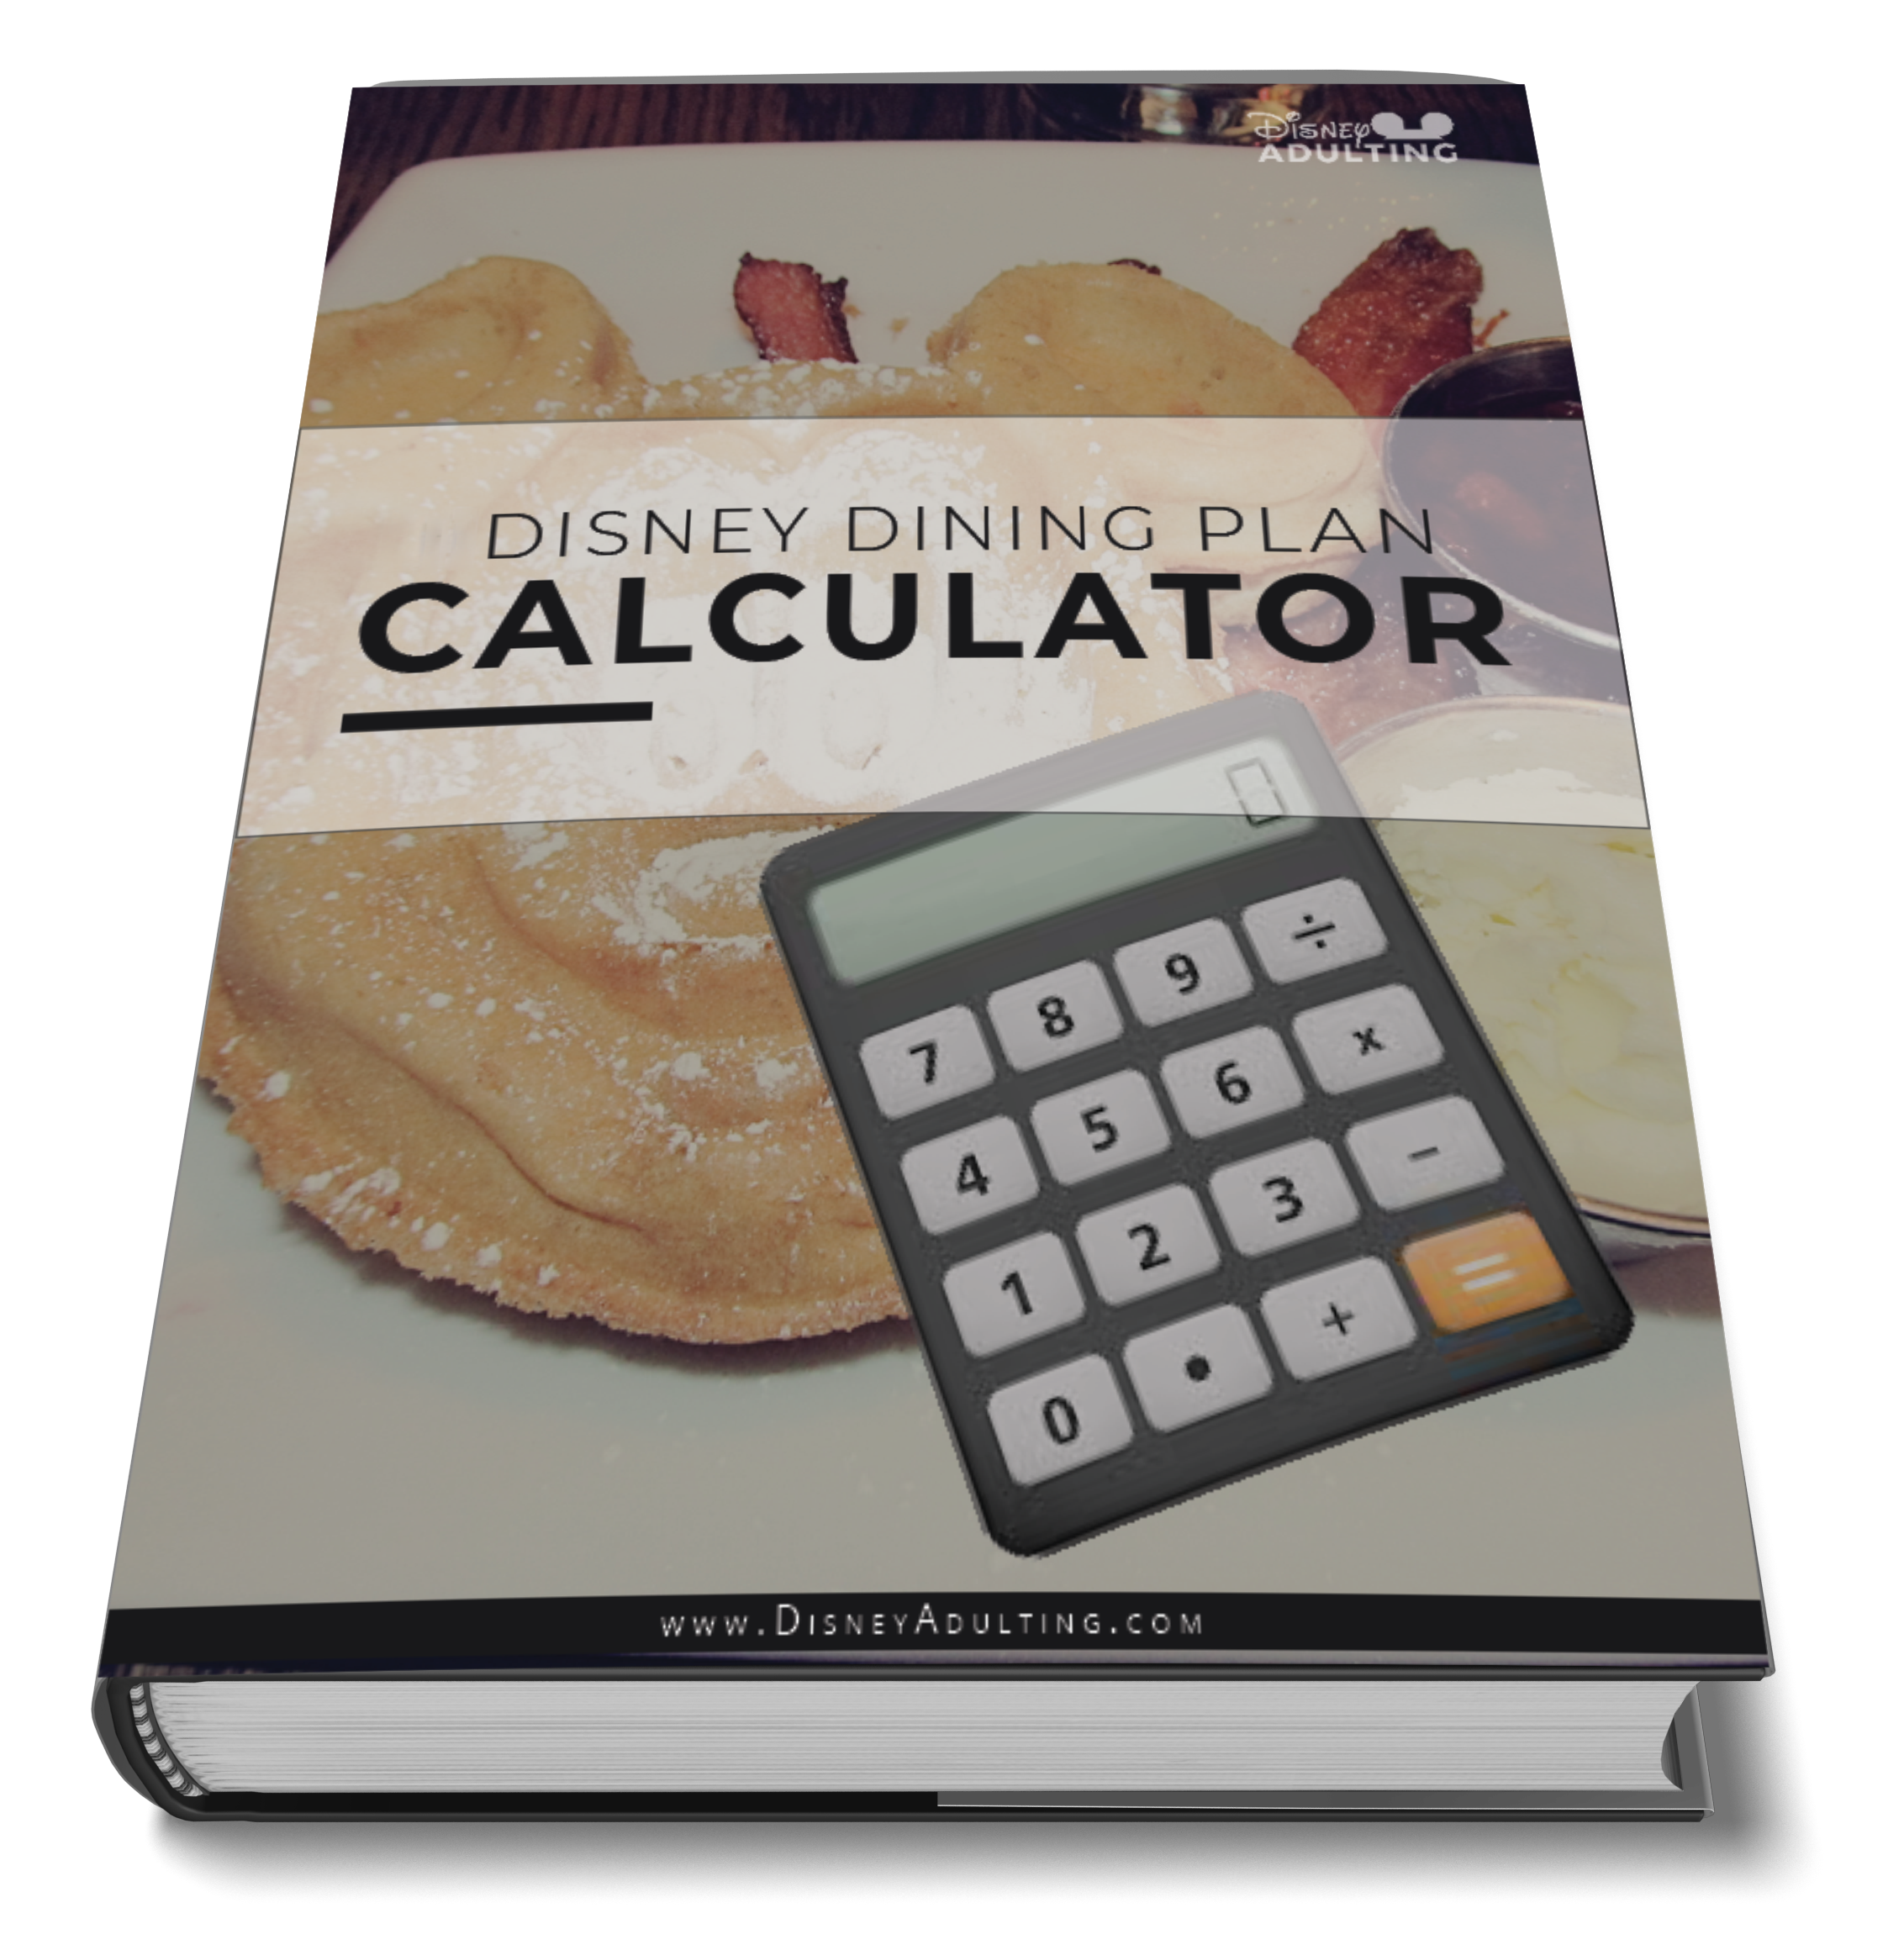 1901-Dining-Plan-Calculator-Book